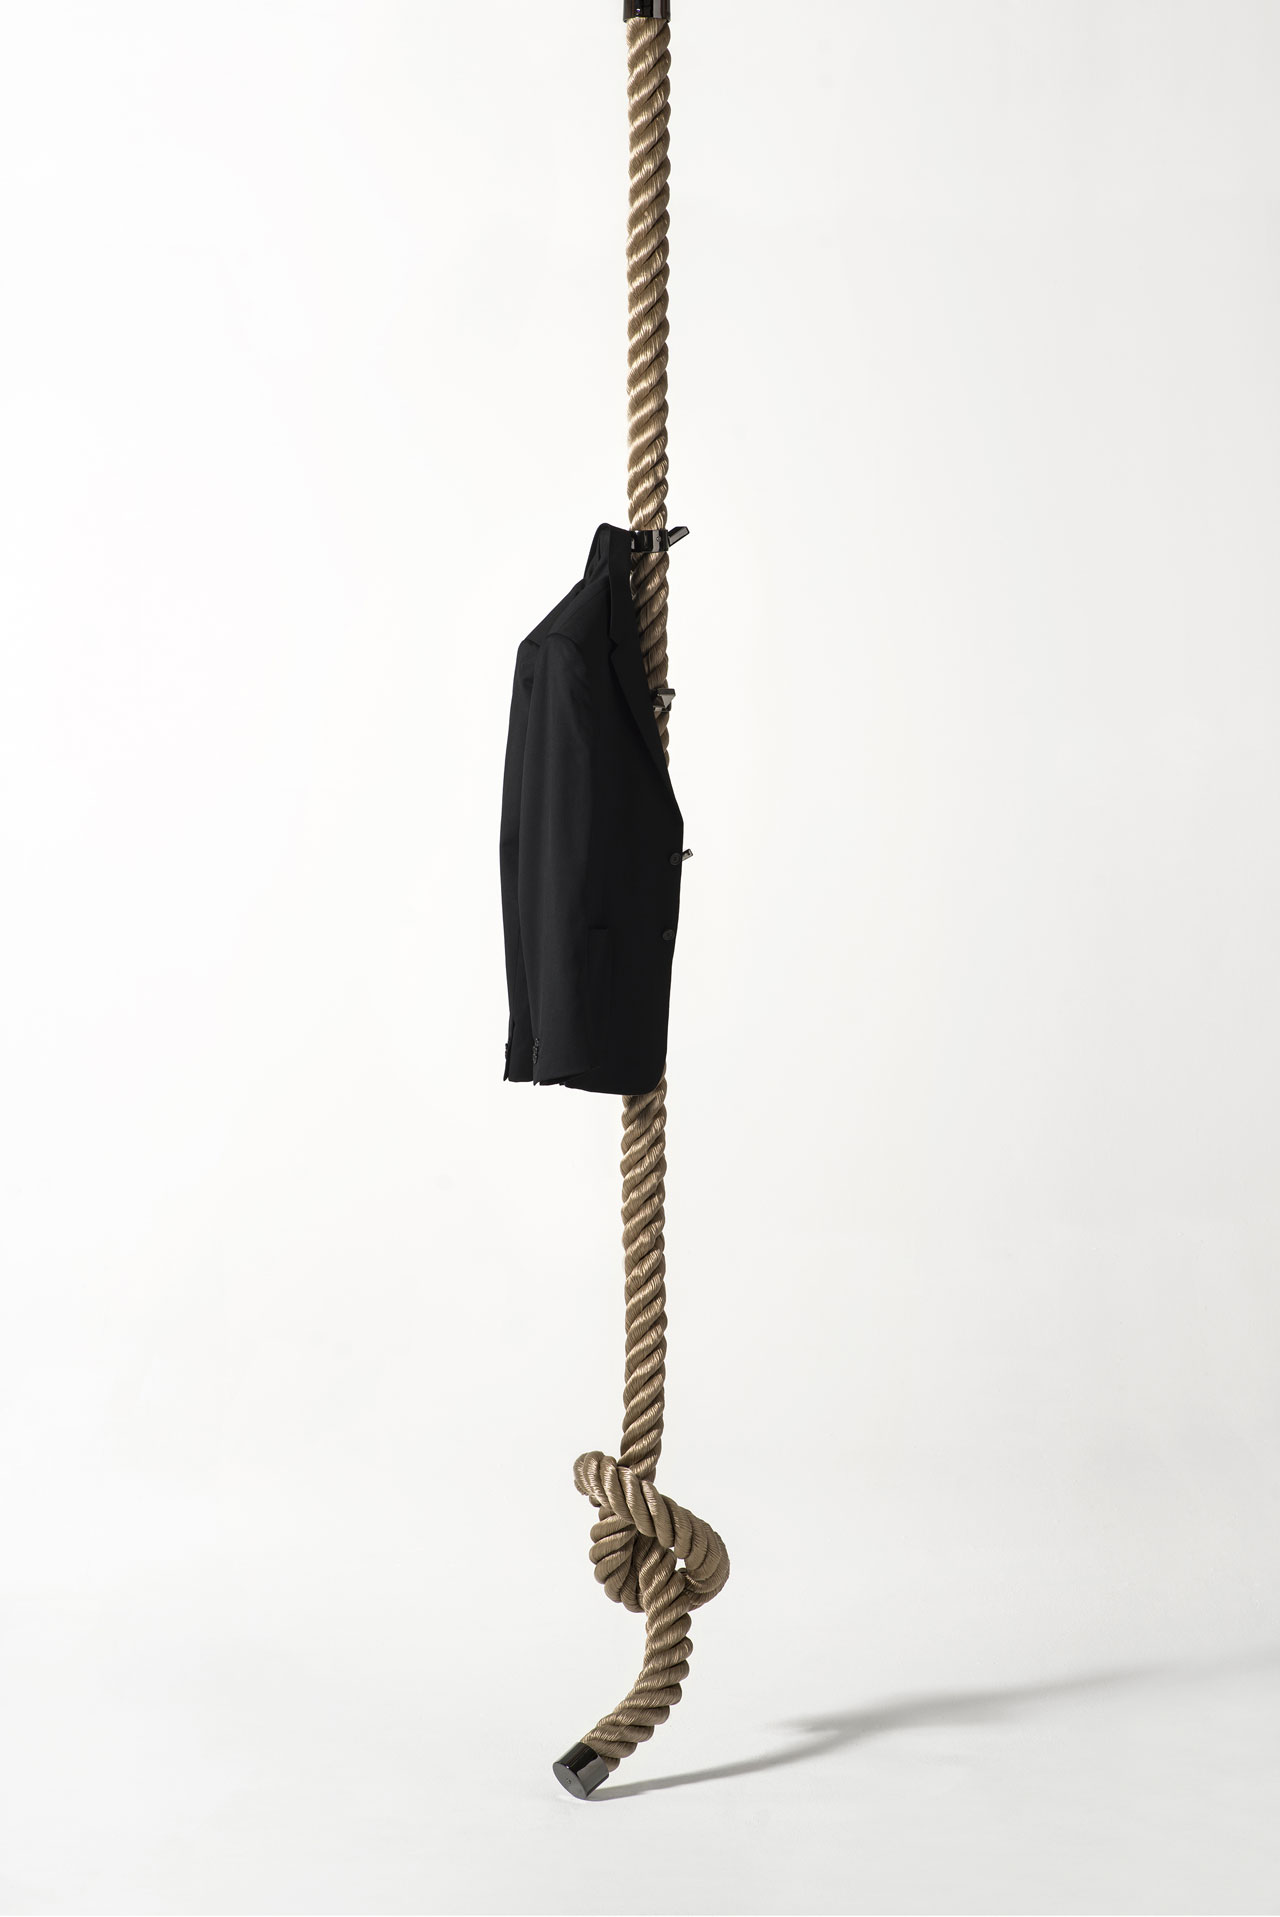 La Cima3 clothes hanger by Lapo Ciatti for Opinion Ciatti.